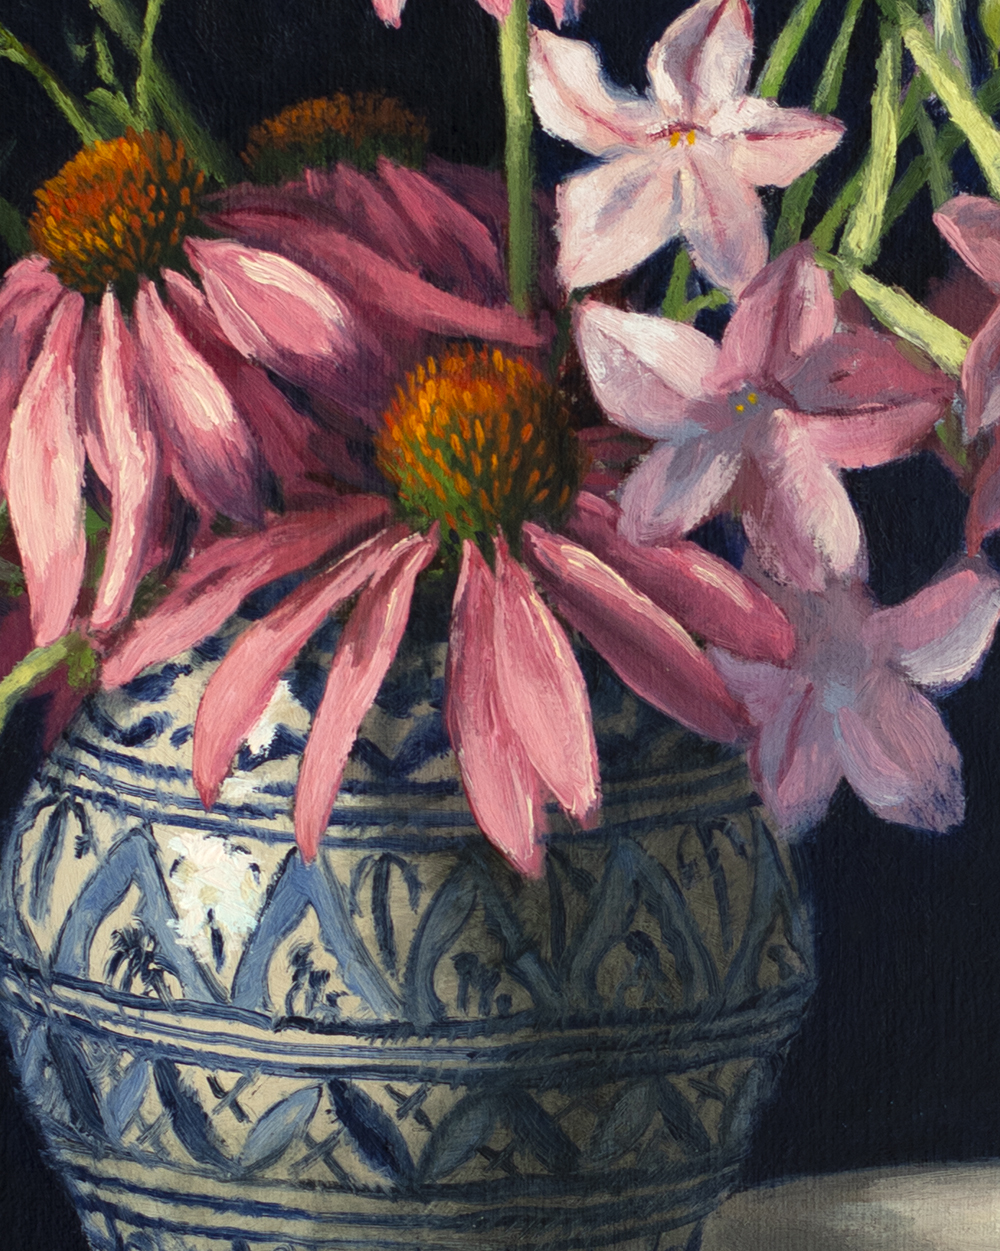 20190714-014 A World of Pink and Blue 20x16 detail 1.jpg